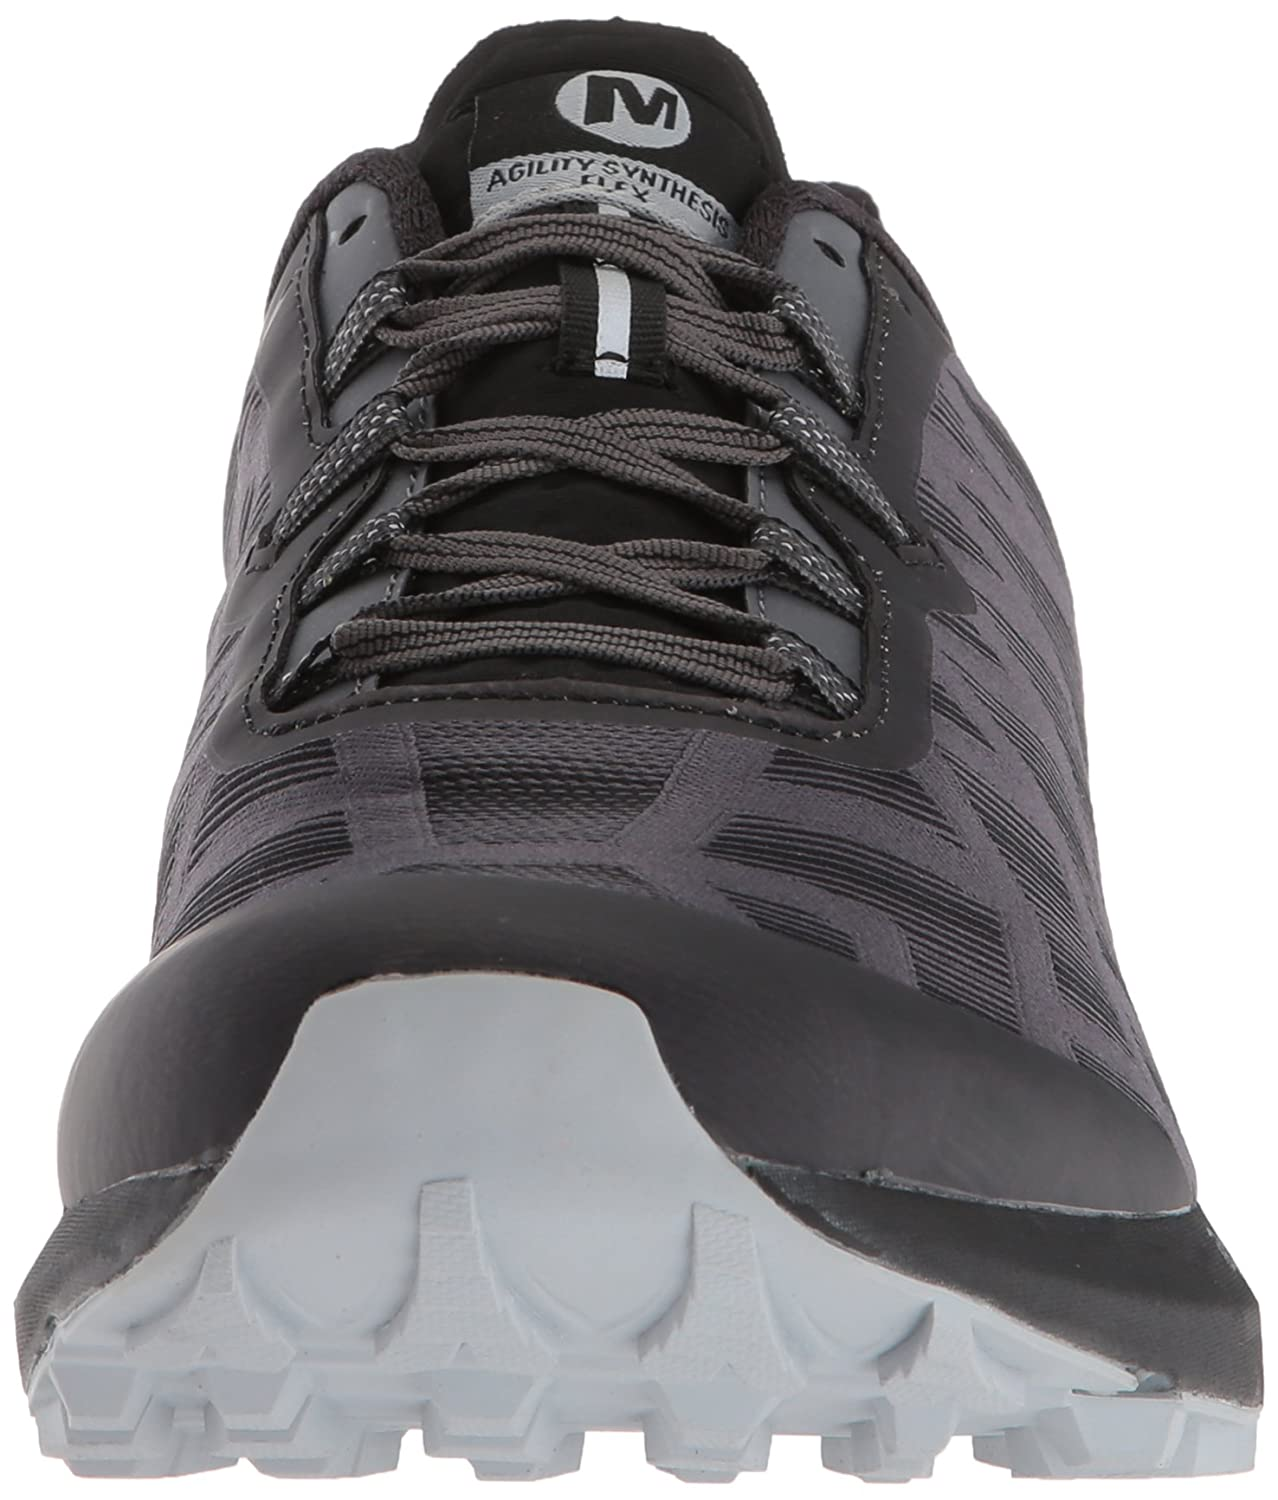 watch 8d961 39872 Merrell Men s Agility Synthesis Flex Trail Running Shoes  Amazon.co.uk   Shoes   Bags